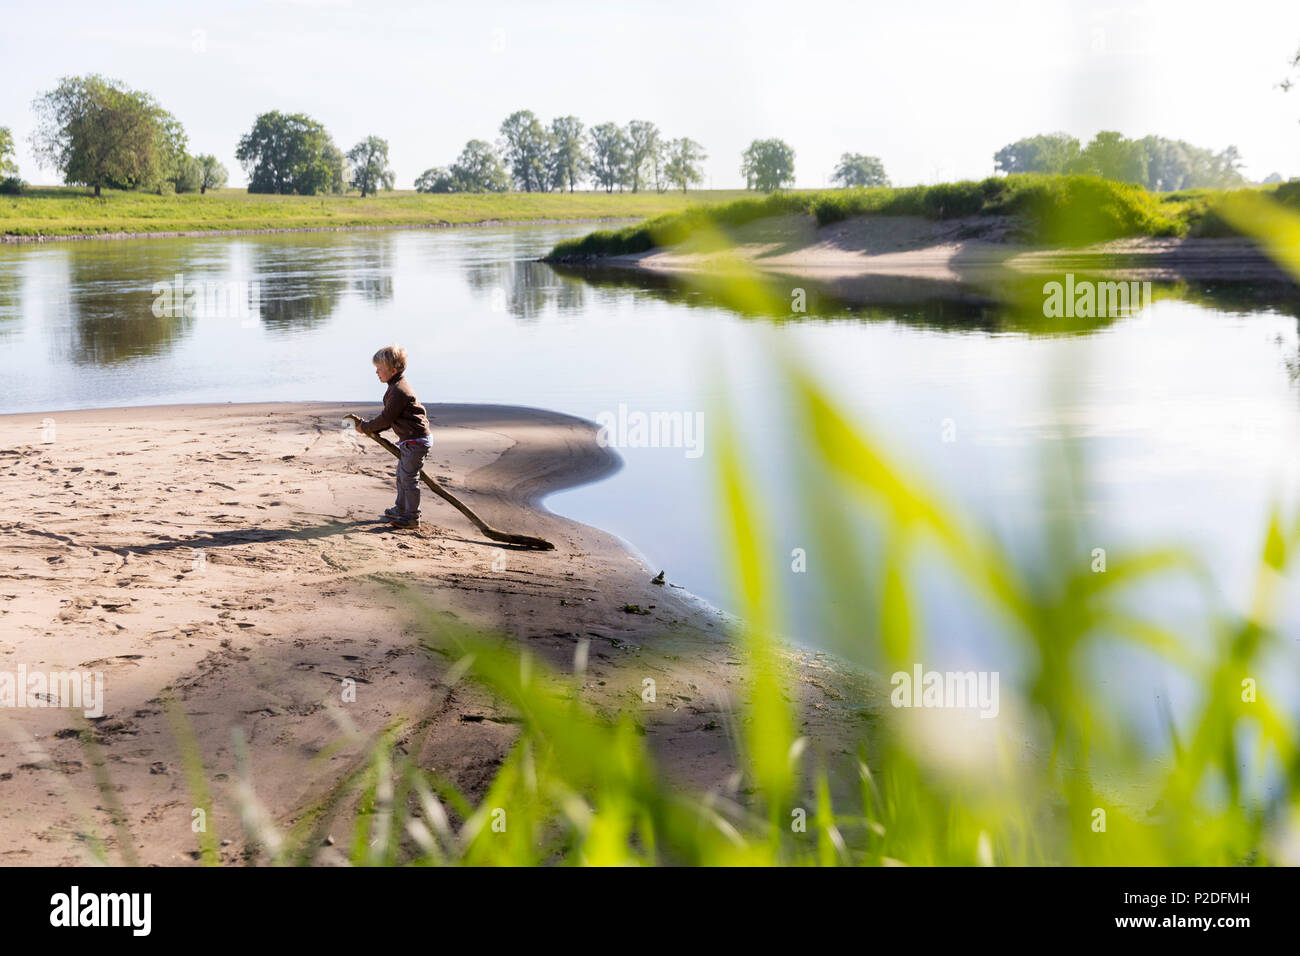 Boy playing near the river, Family bicycle tour along the river Elbe, adventure, from Torgau to Riesa, Saxony, Germany, Europe Stock Photo